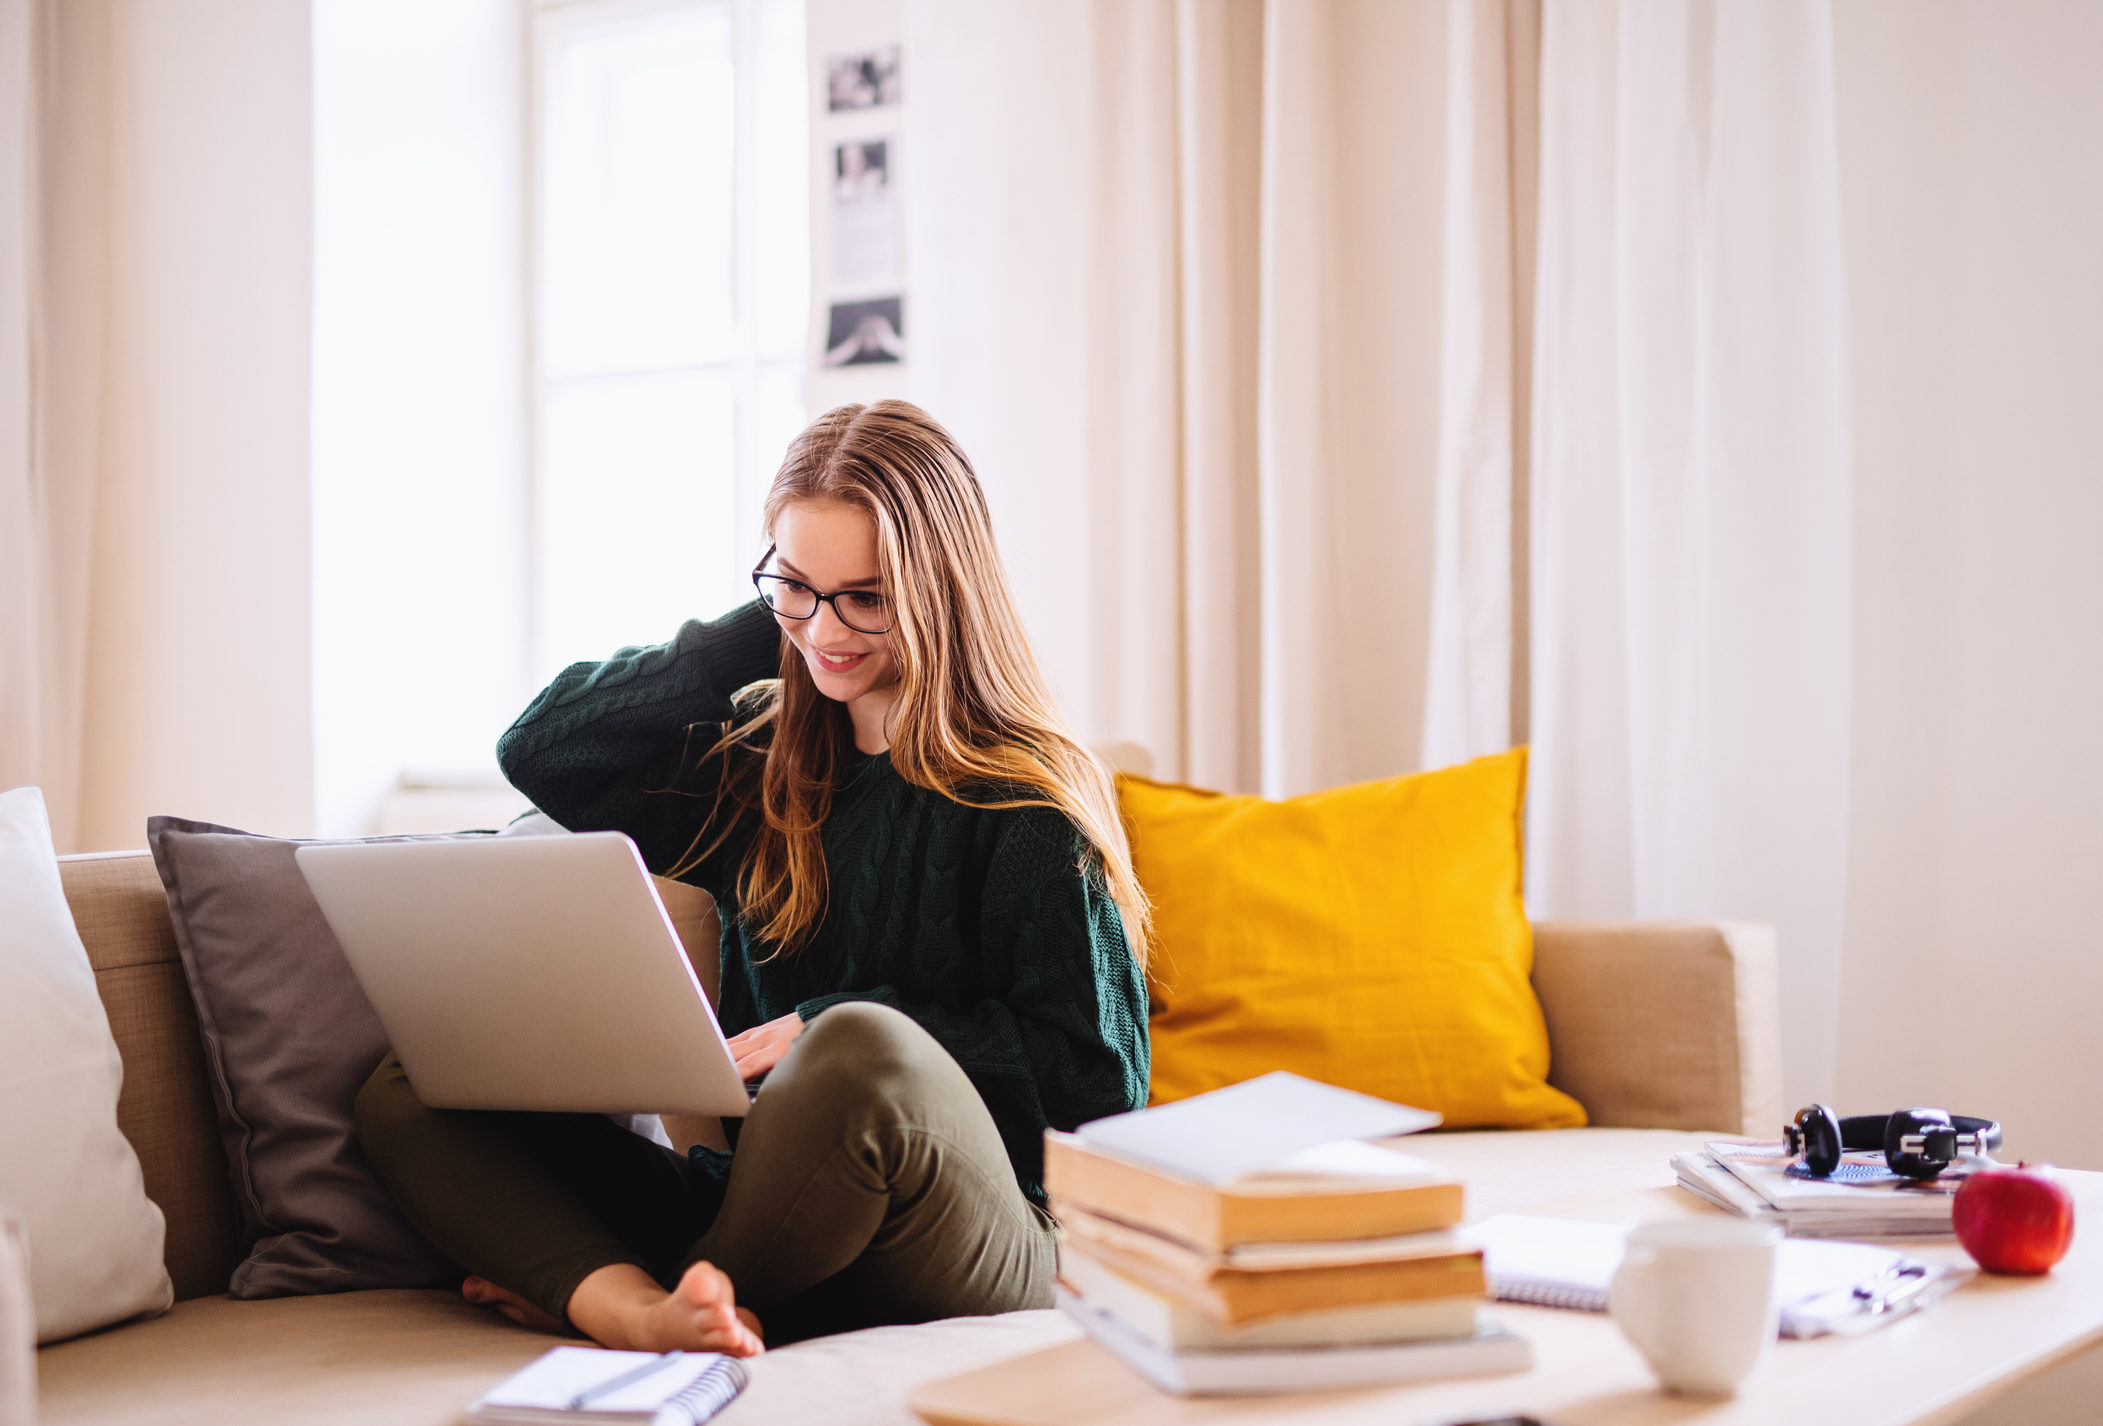 a-young-female-student-sitting-on-sofa-using-laptop-when-studying